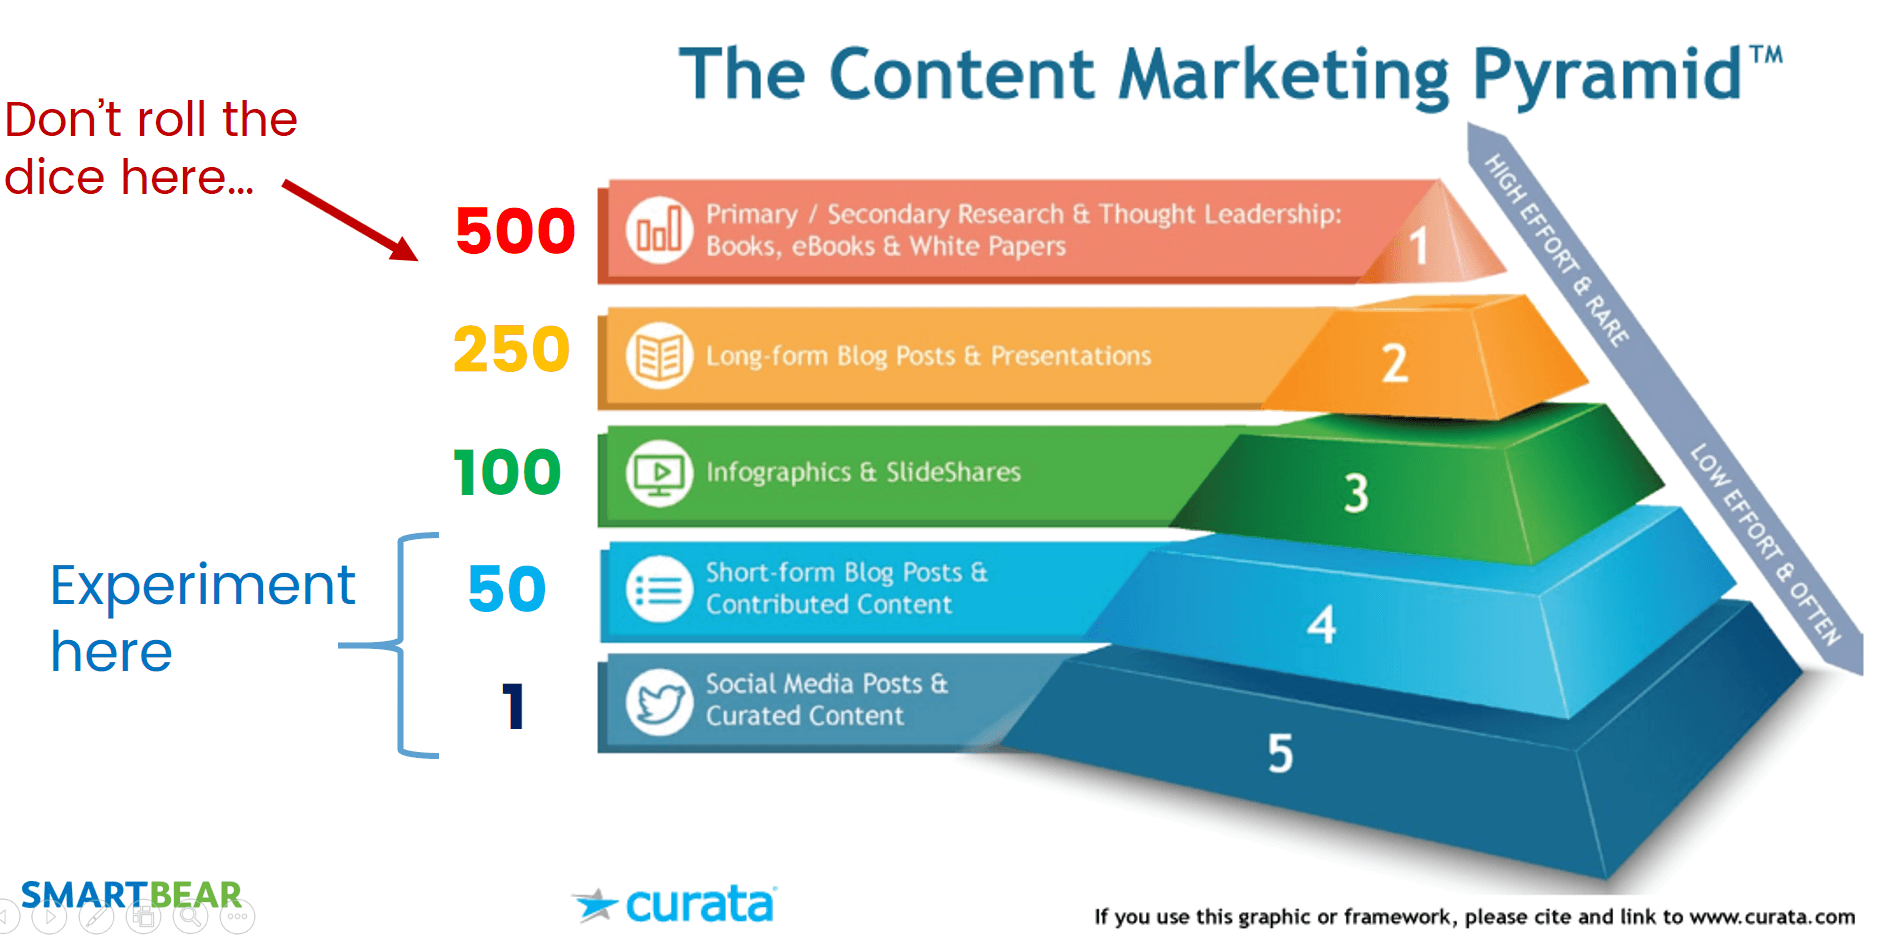 Curata Content Marketing Pyramid